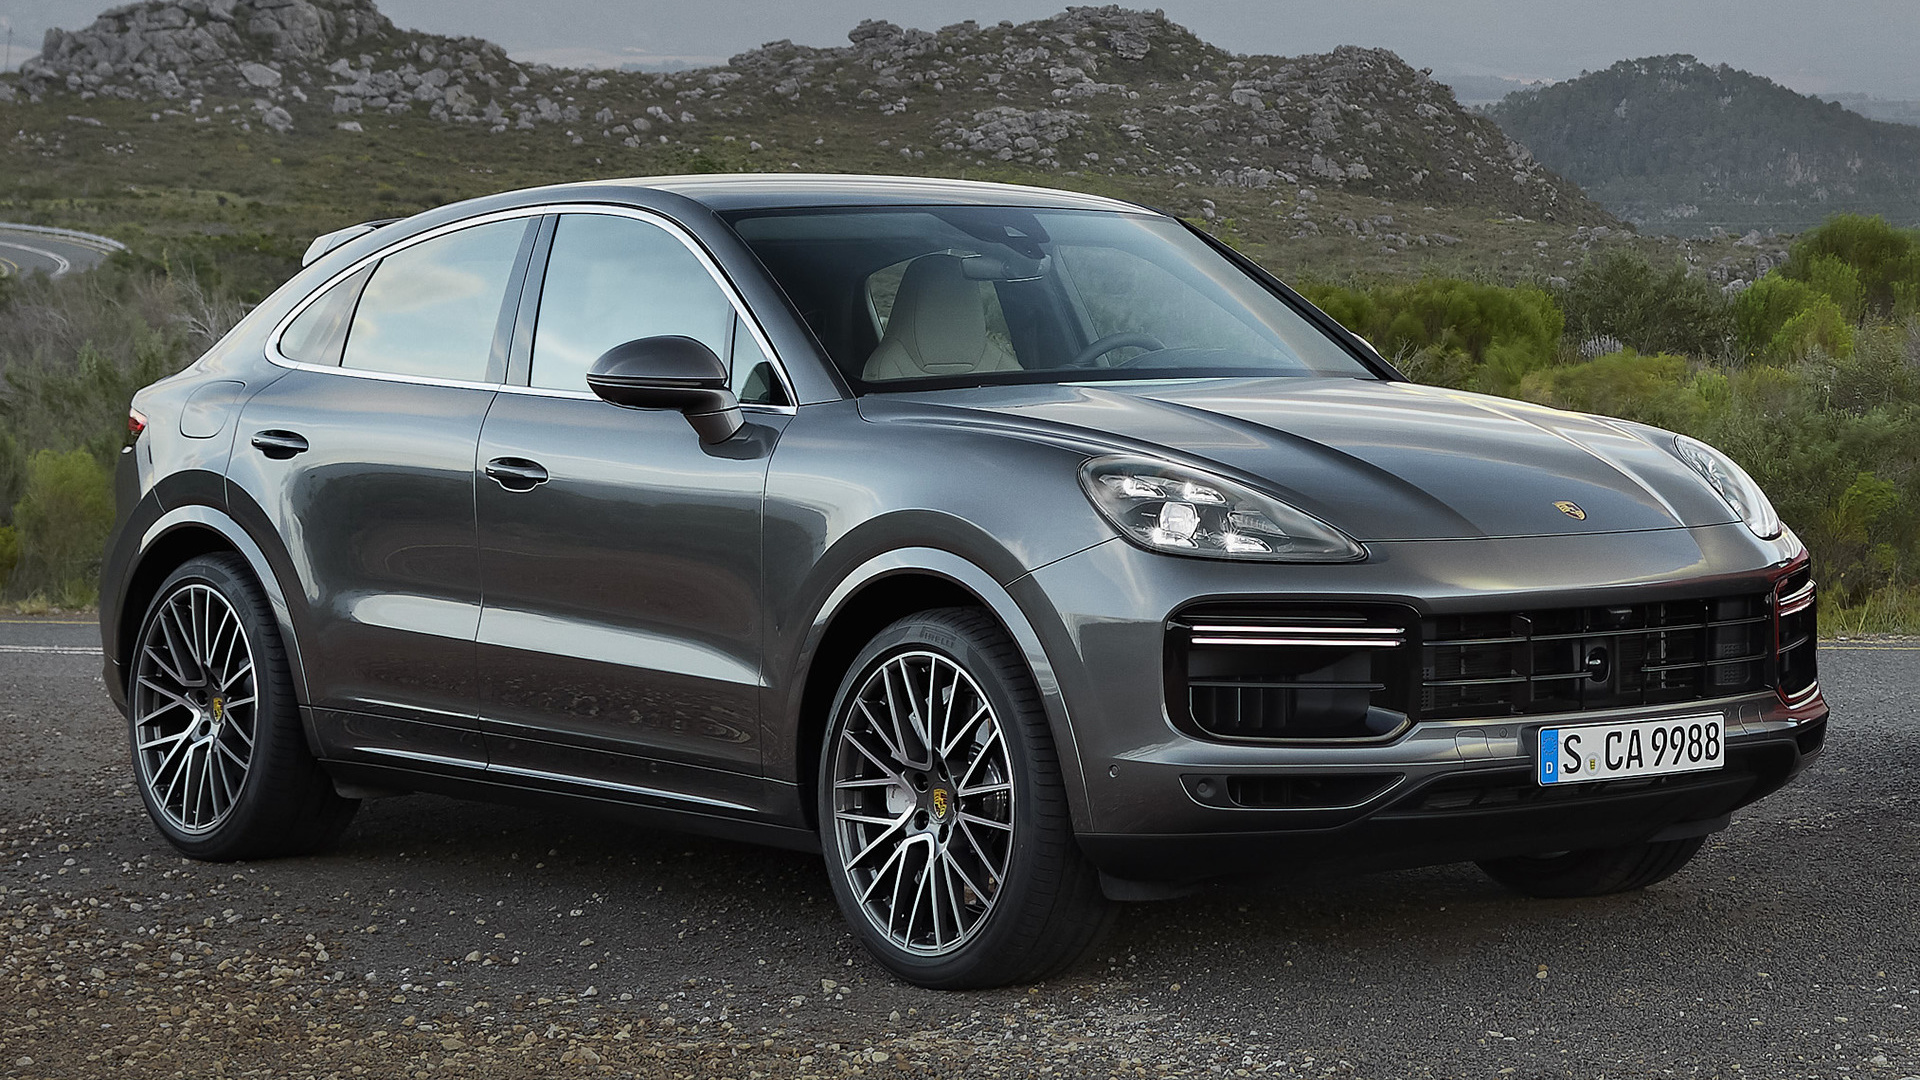 2019 Porsche Cayenne Turbo Coupe   Wallpapers and HD Images Car 1920x1080